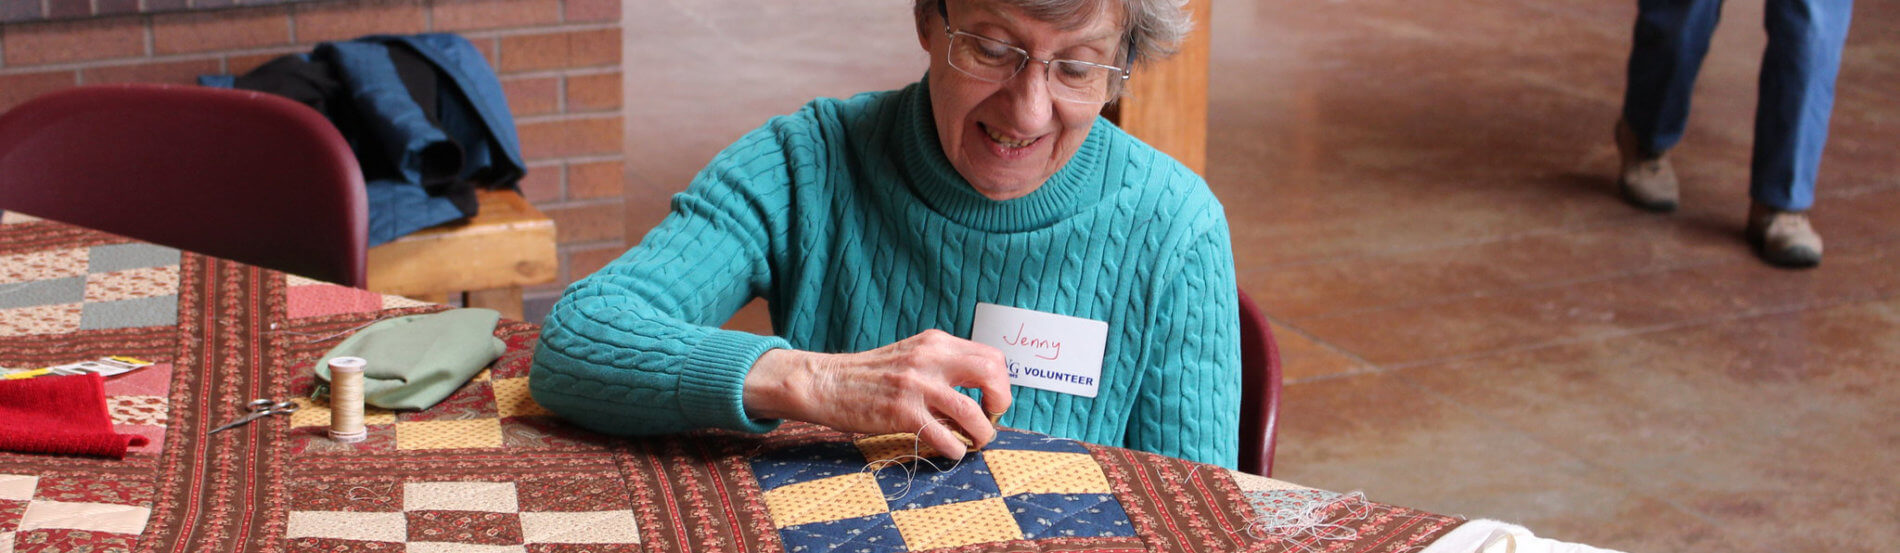 volunteer demonstrating quilting